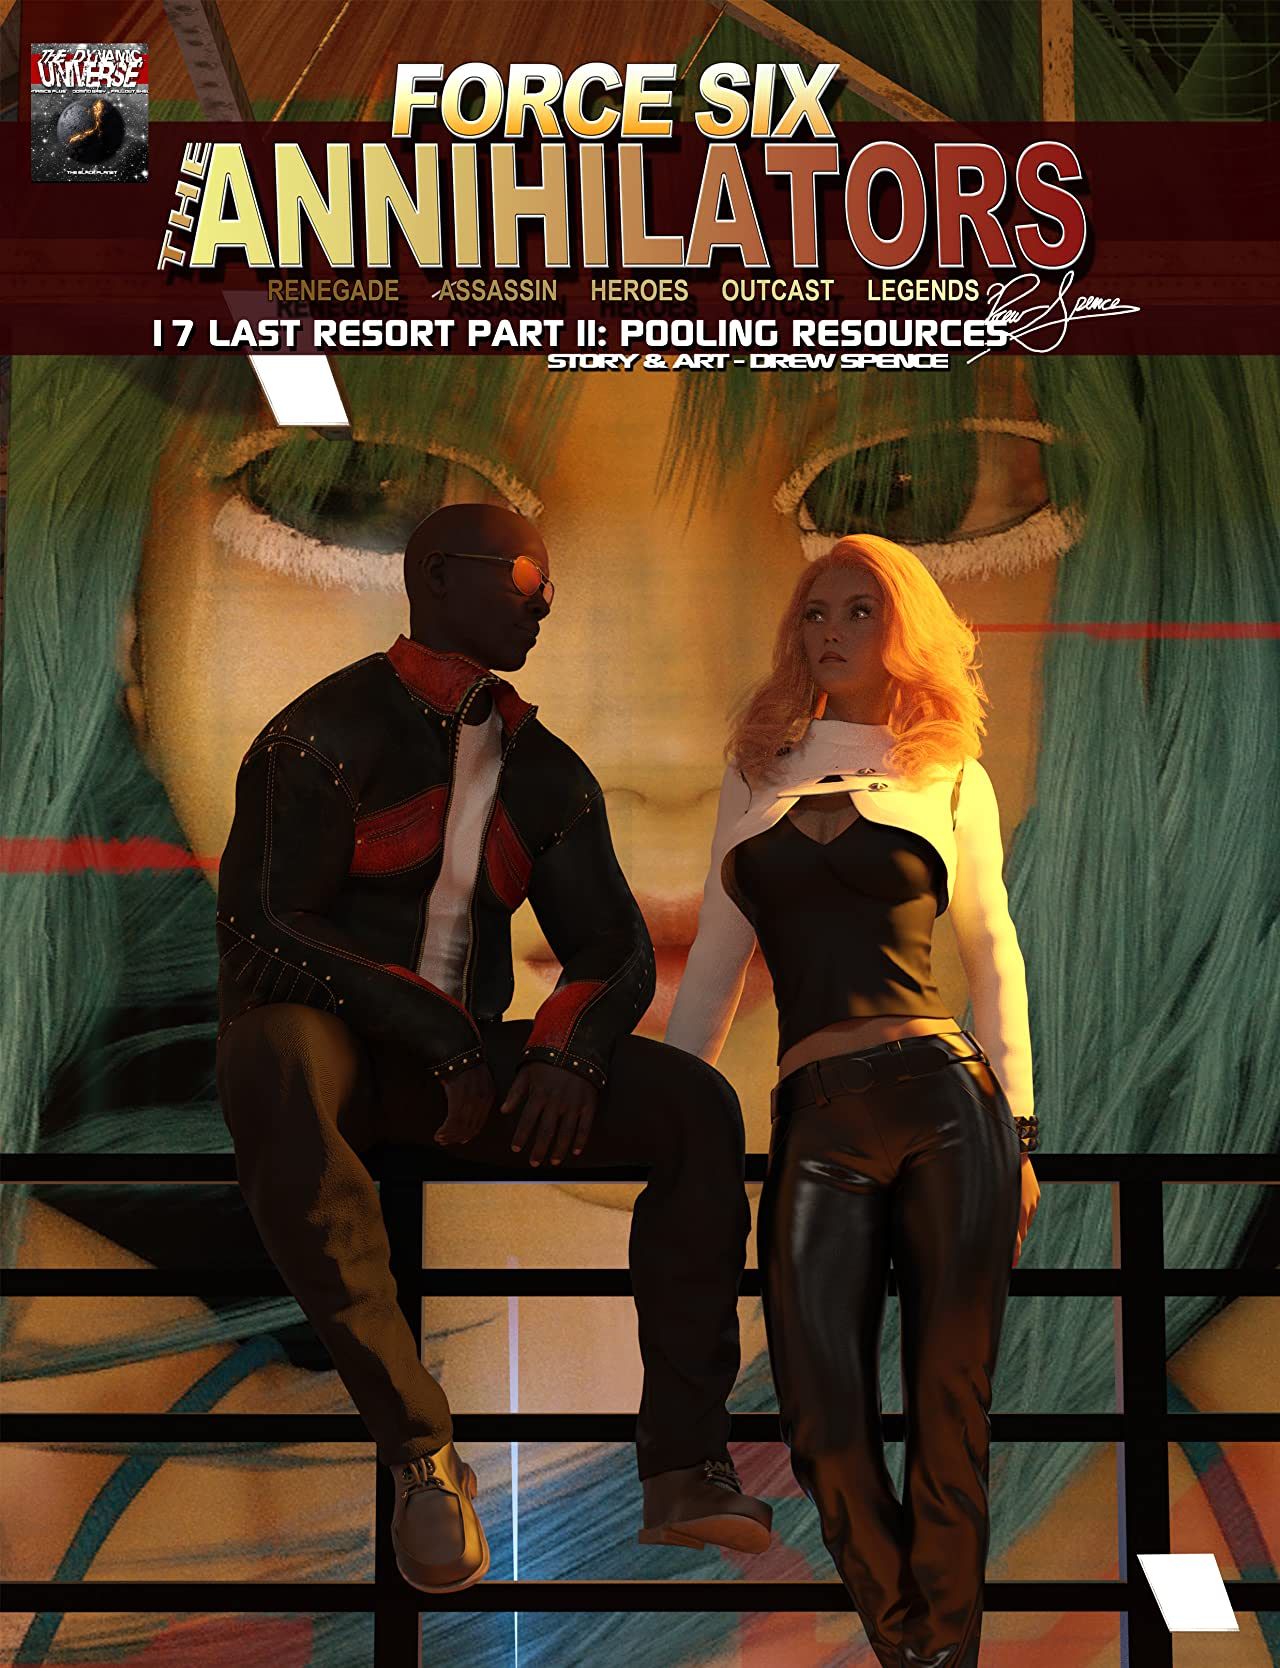 Force Six, The Annihilators 17 Last Resort Part II #17